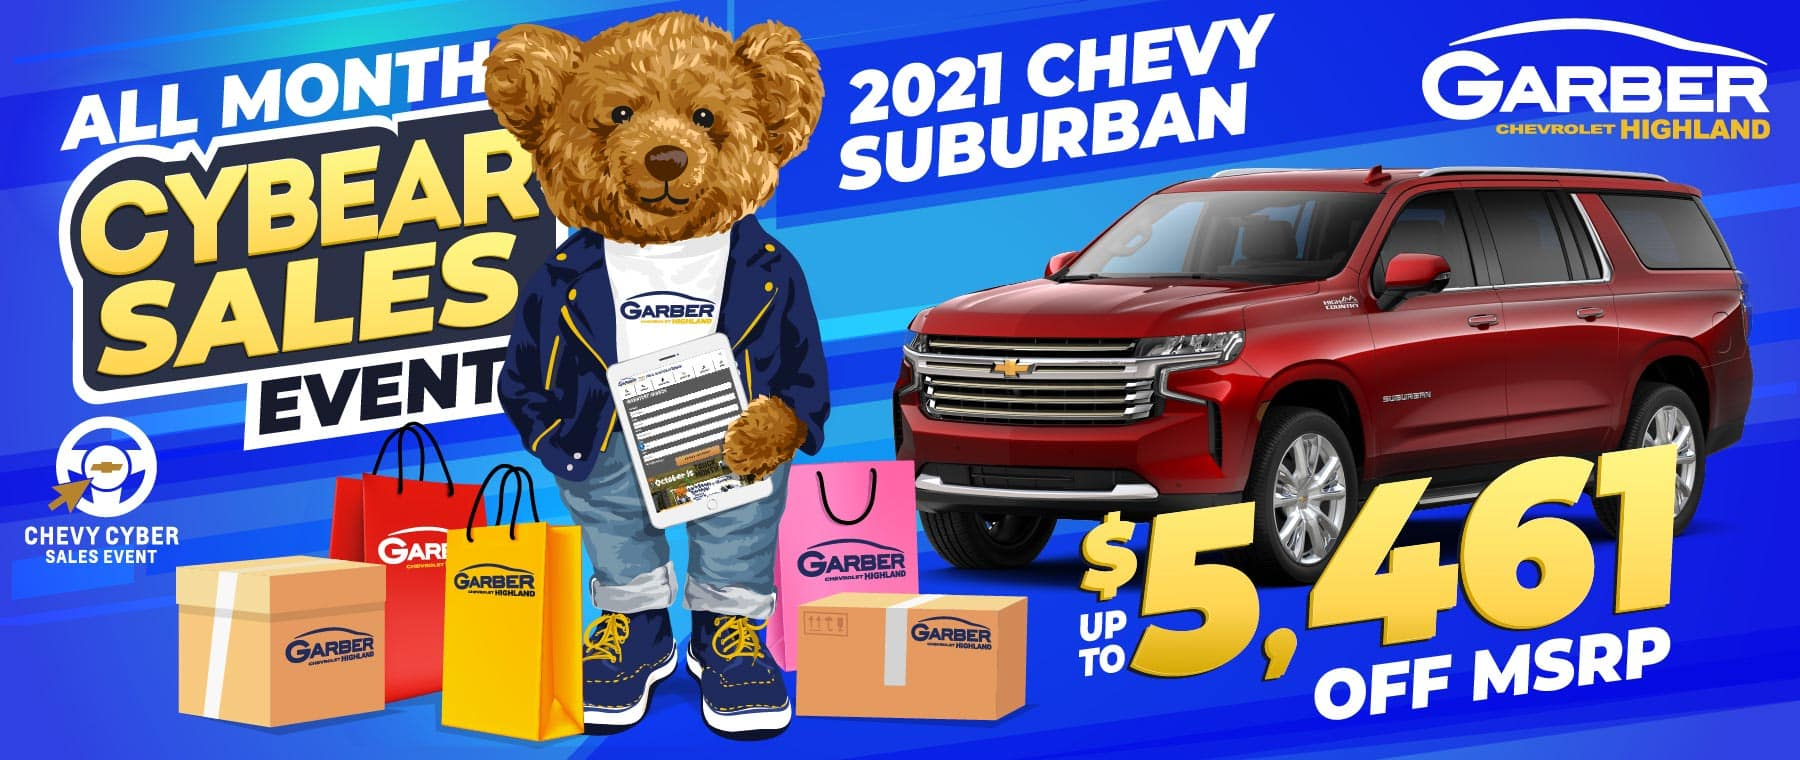 2021 Chevy Suburban - SAVE up to $5461 off MSRP